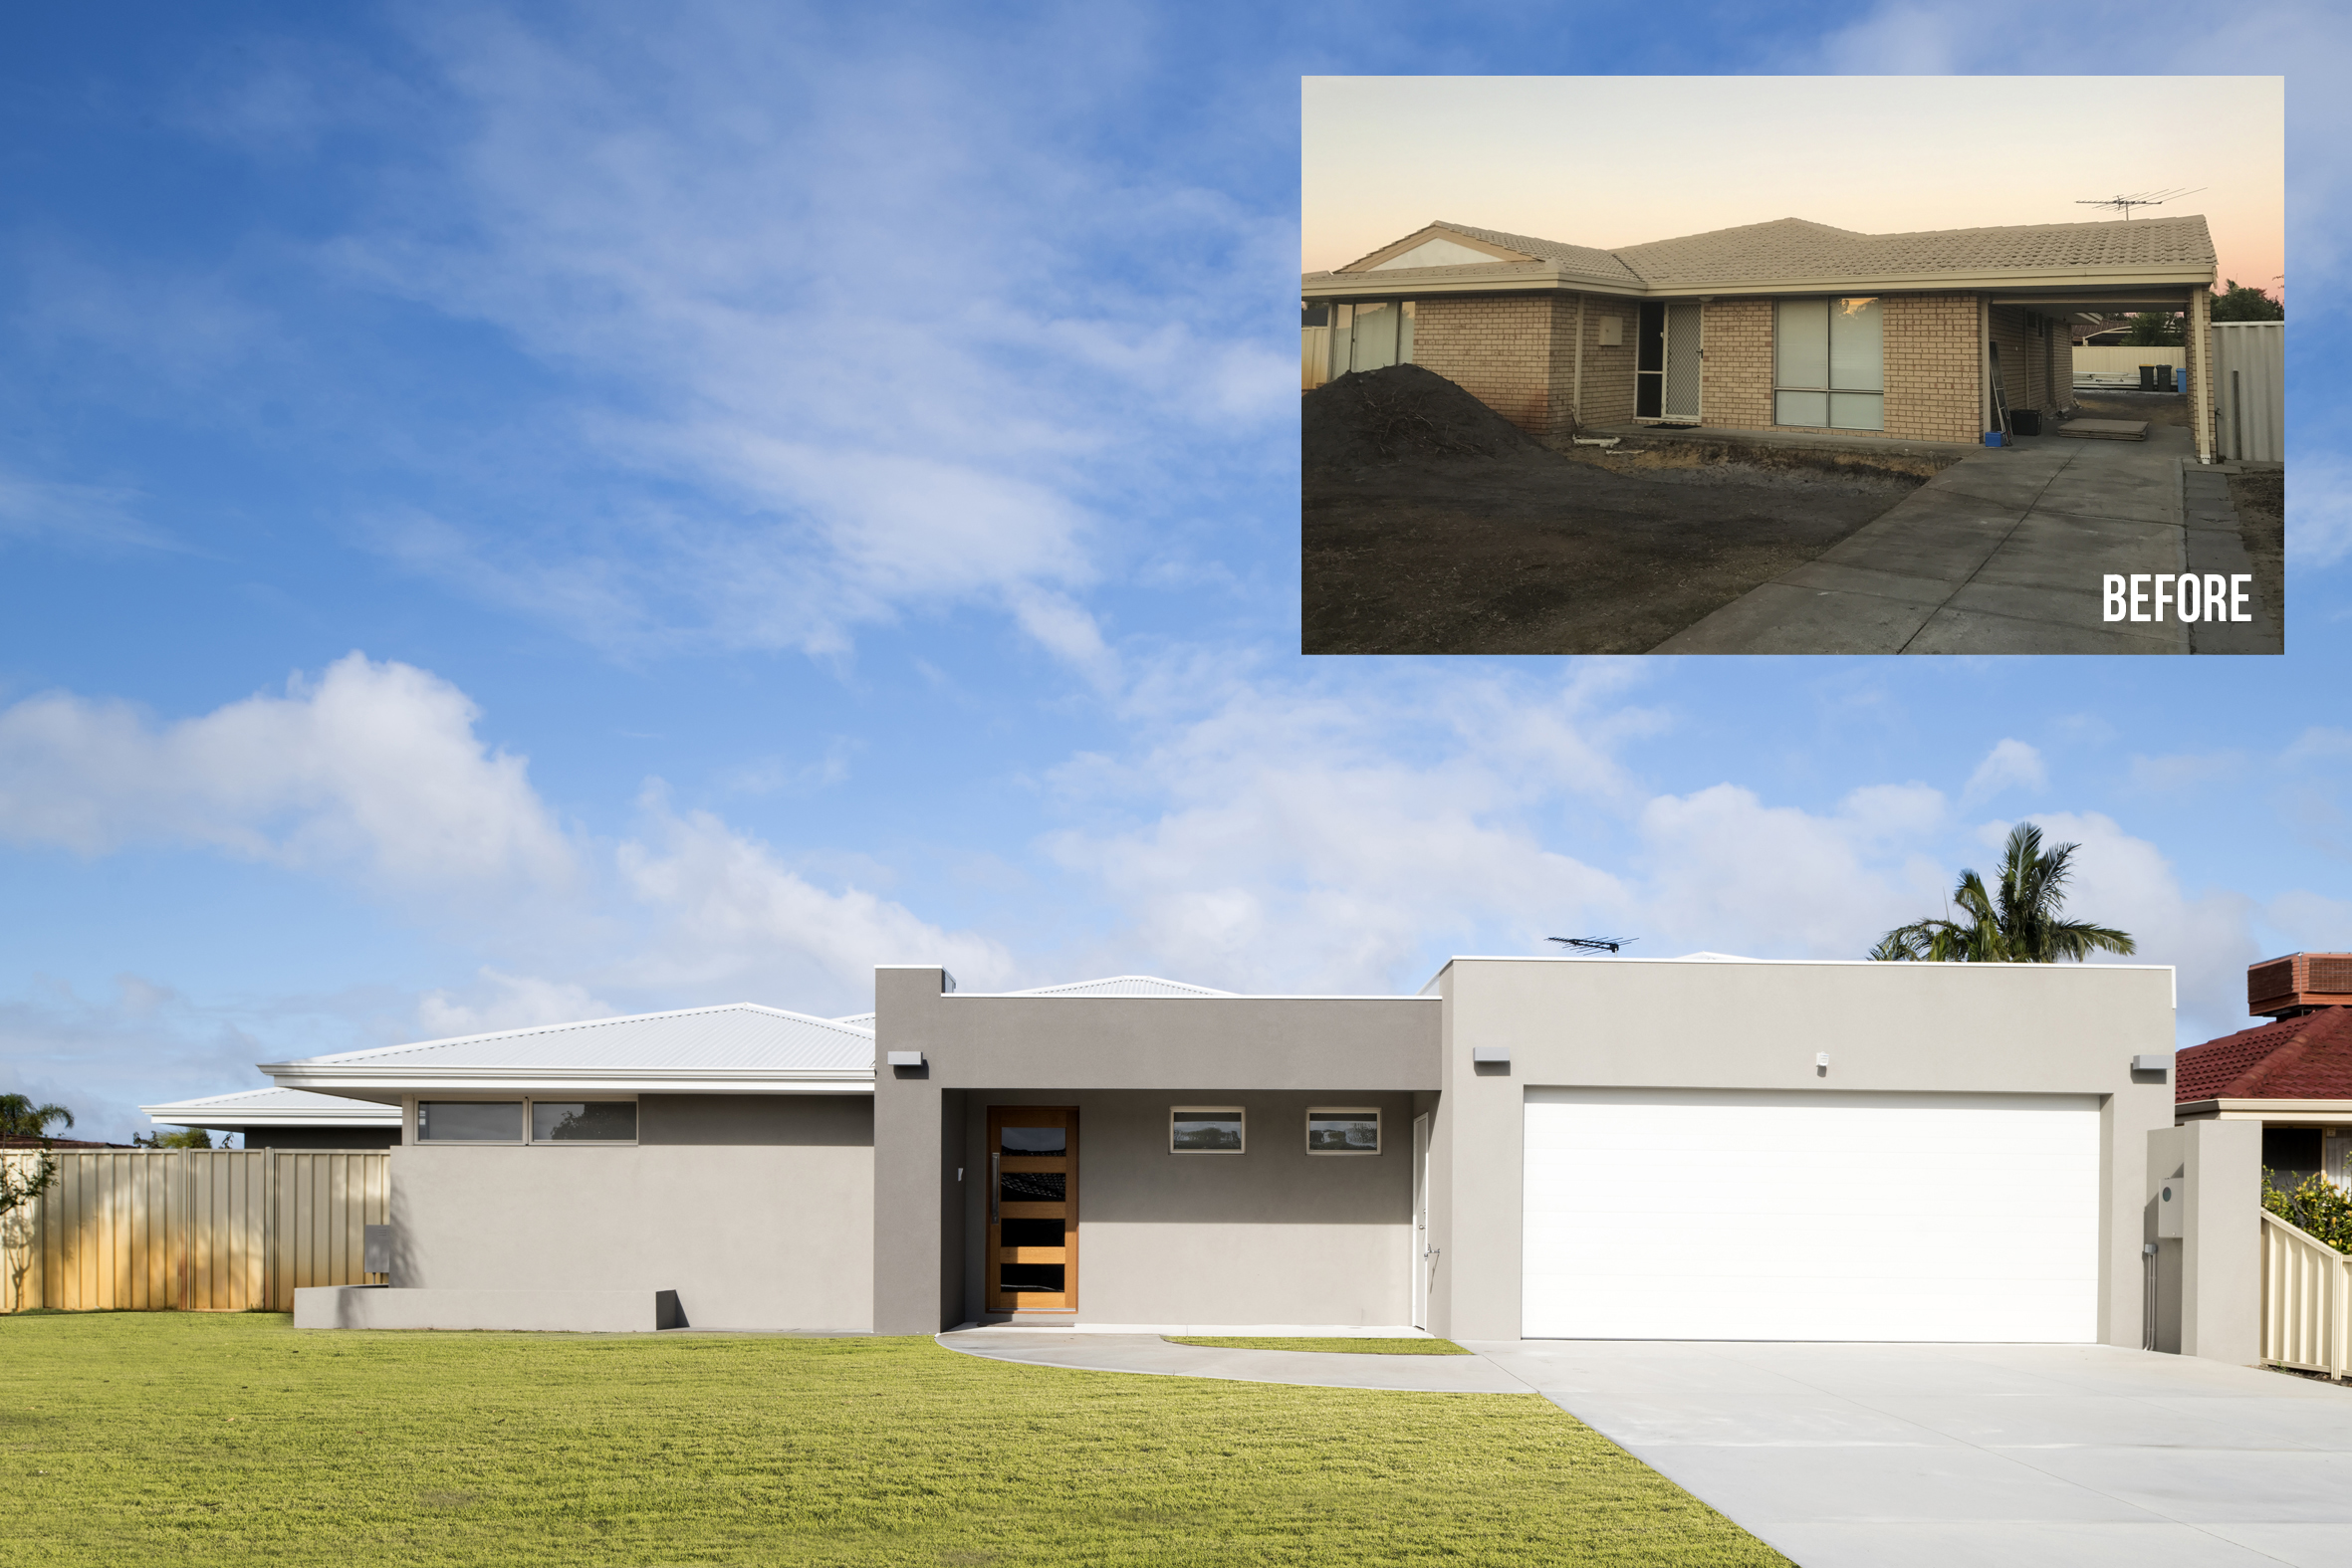 Five bedroom coolbinia residence with a 10 car garage is named was the winning alterationaddition project in kiara by exclusive residence malvernweather Choice Image